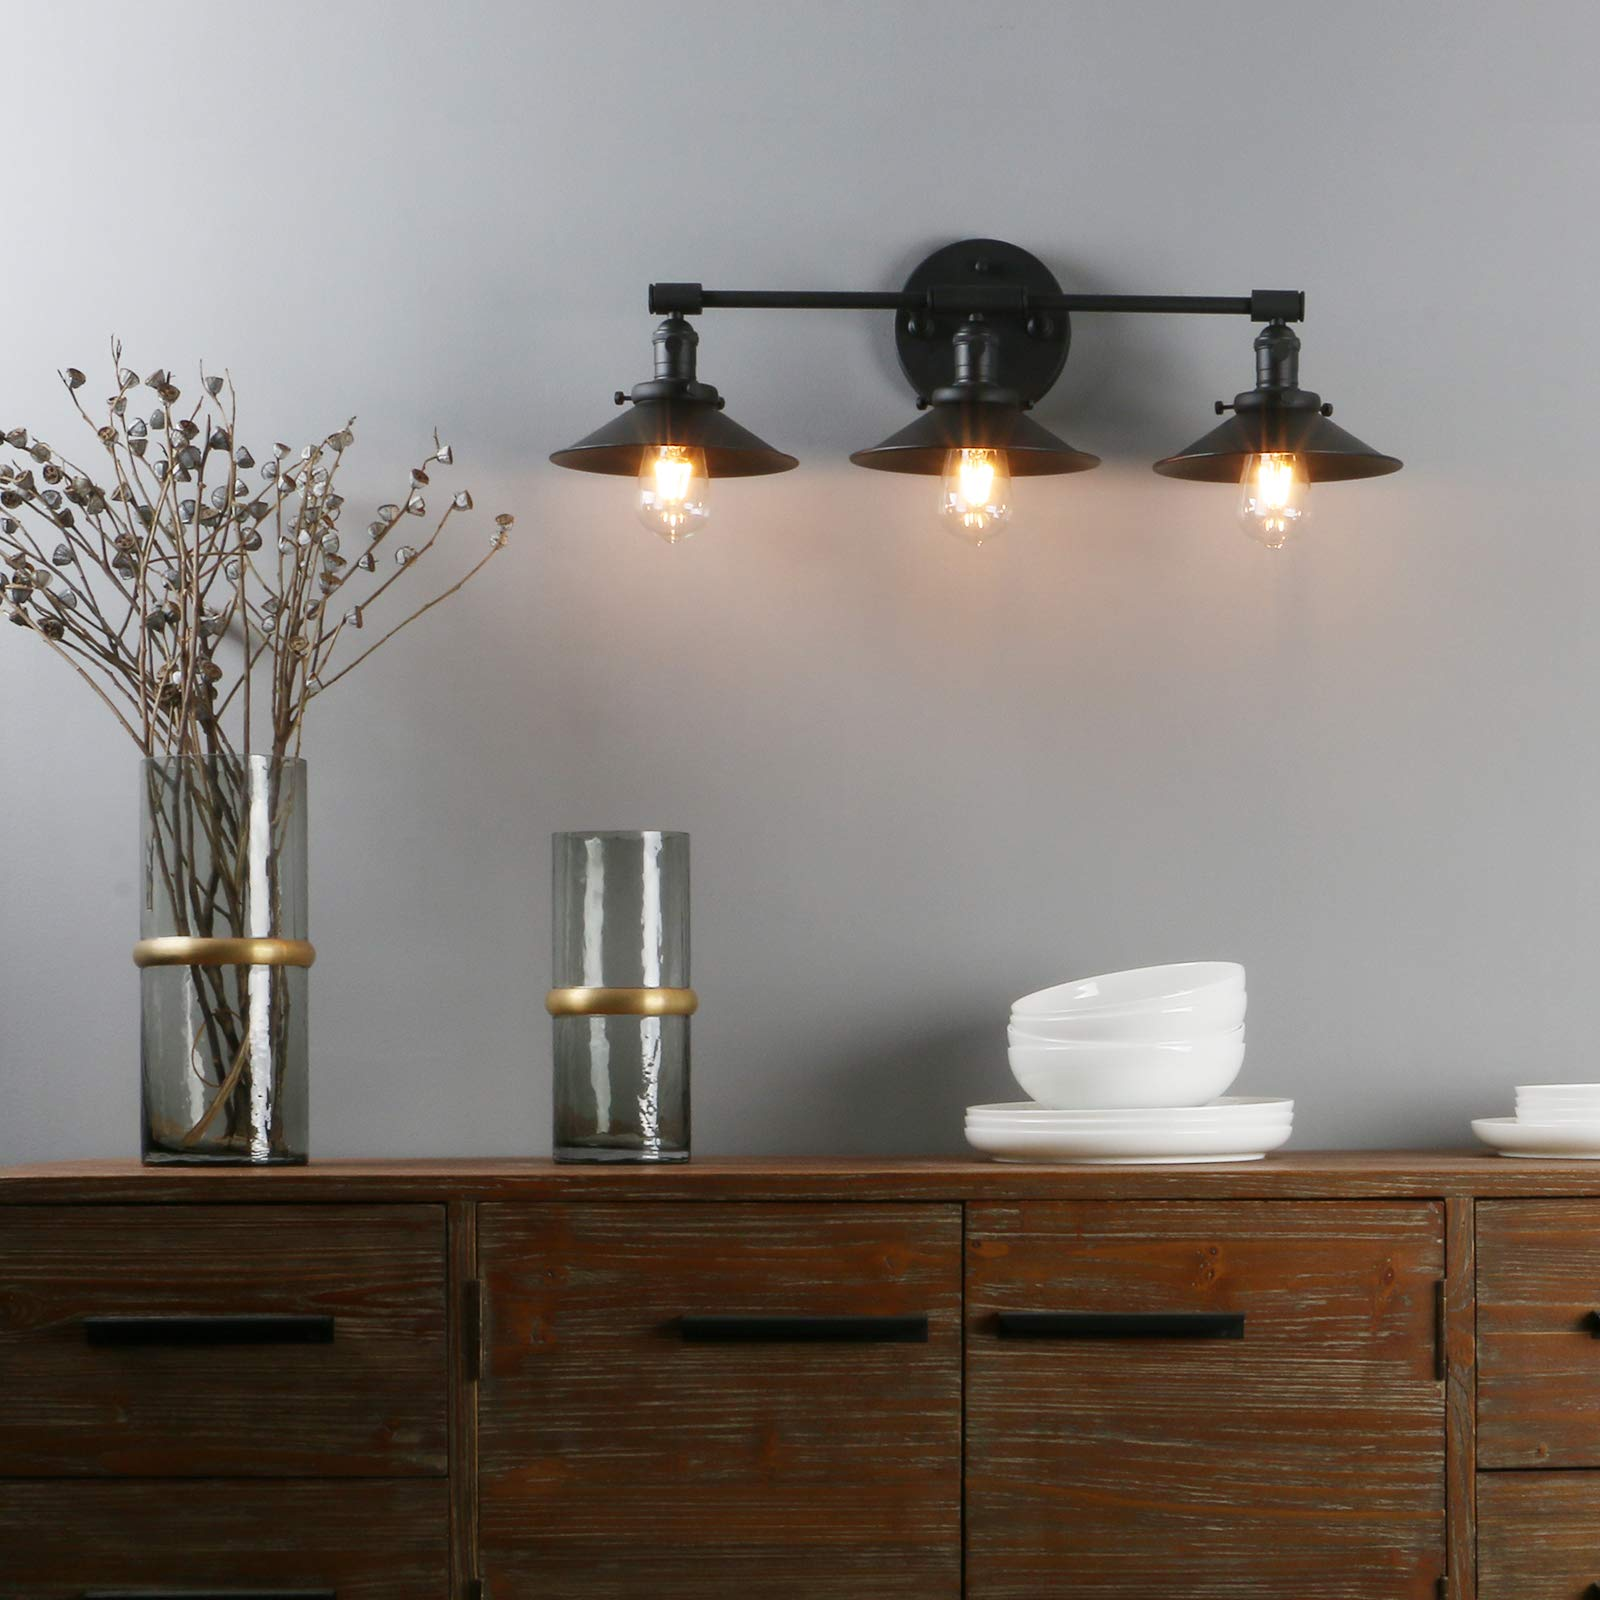 """Phansthy Vanity Lights 3 Lights Wall Sconce with 7.87""""Metal Lamp Shade (Matte Black) by Phansthy (Image #8)"""